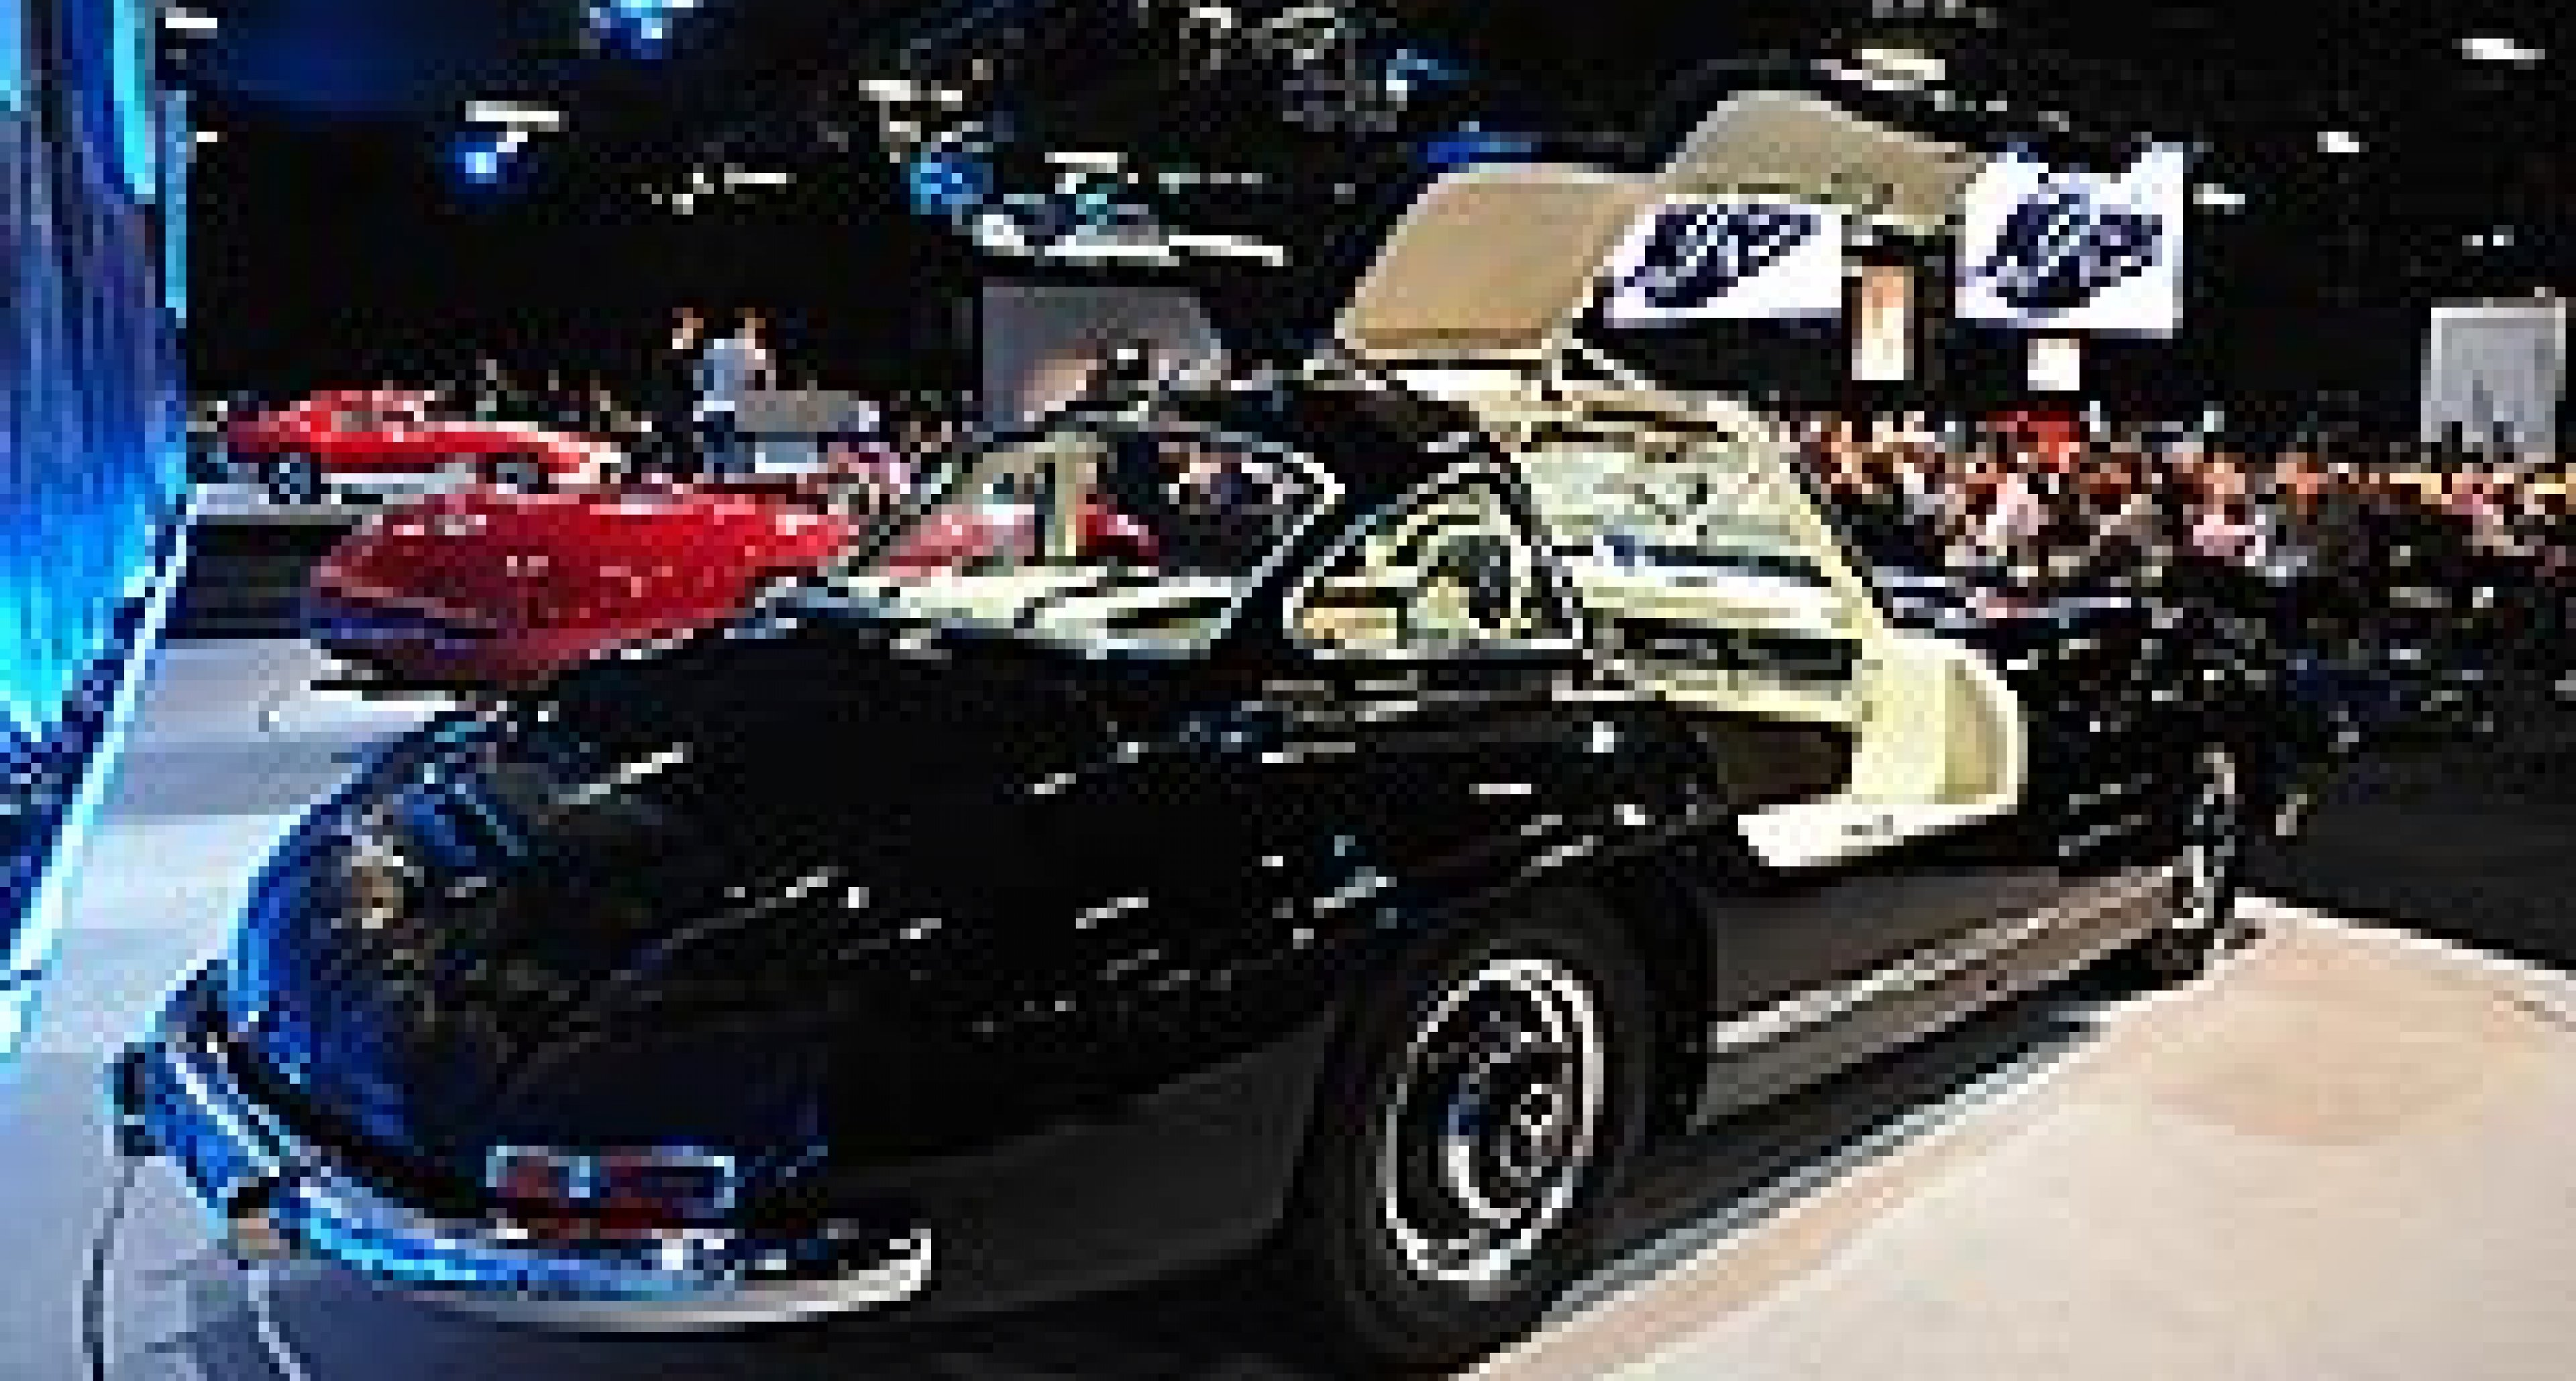 RM Auctions - 'Automobiles of London', 26 October 2011: Review